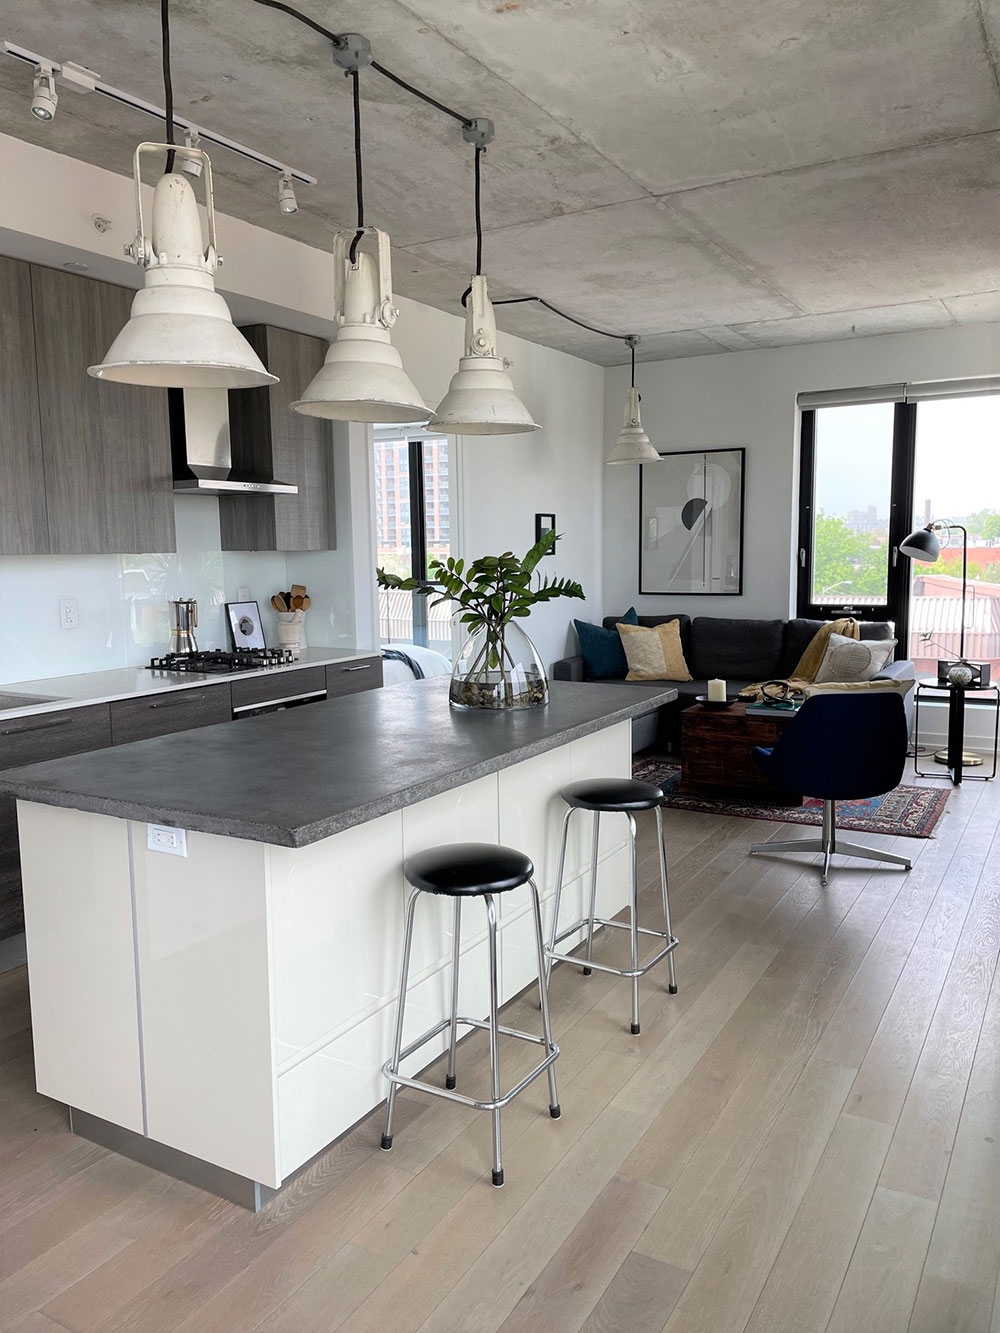 Homefront Redesigns Indian Grove kitchen area